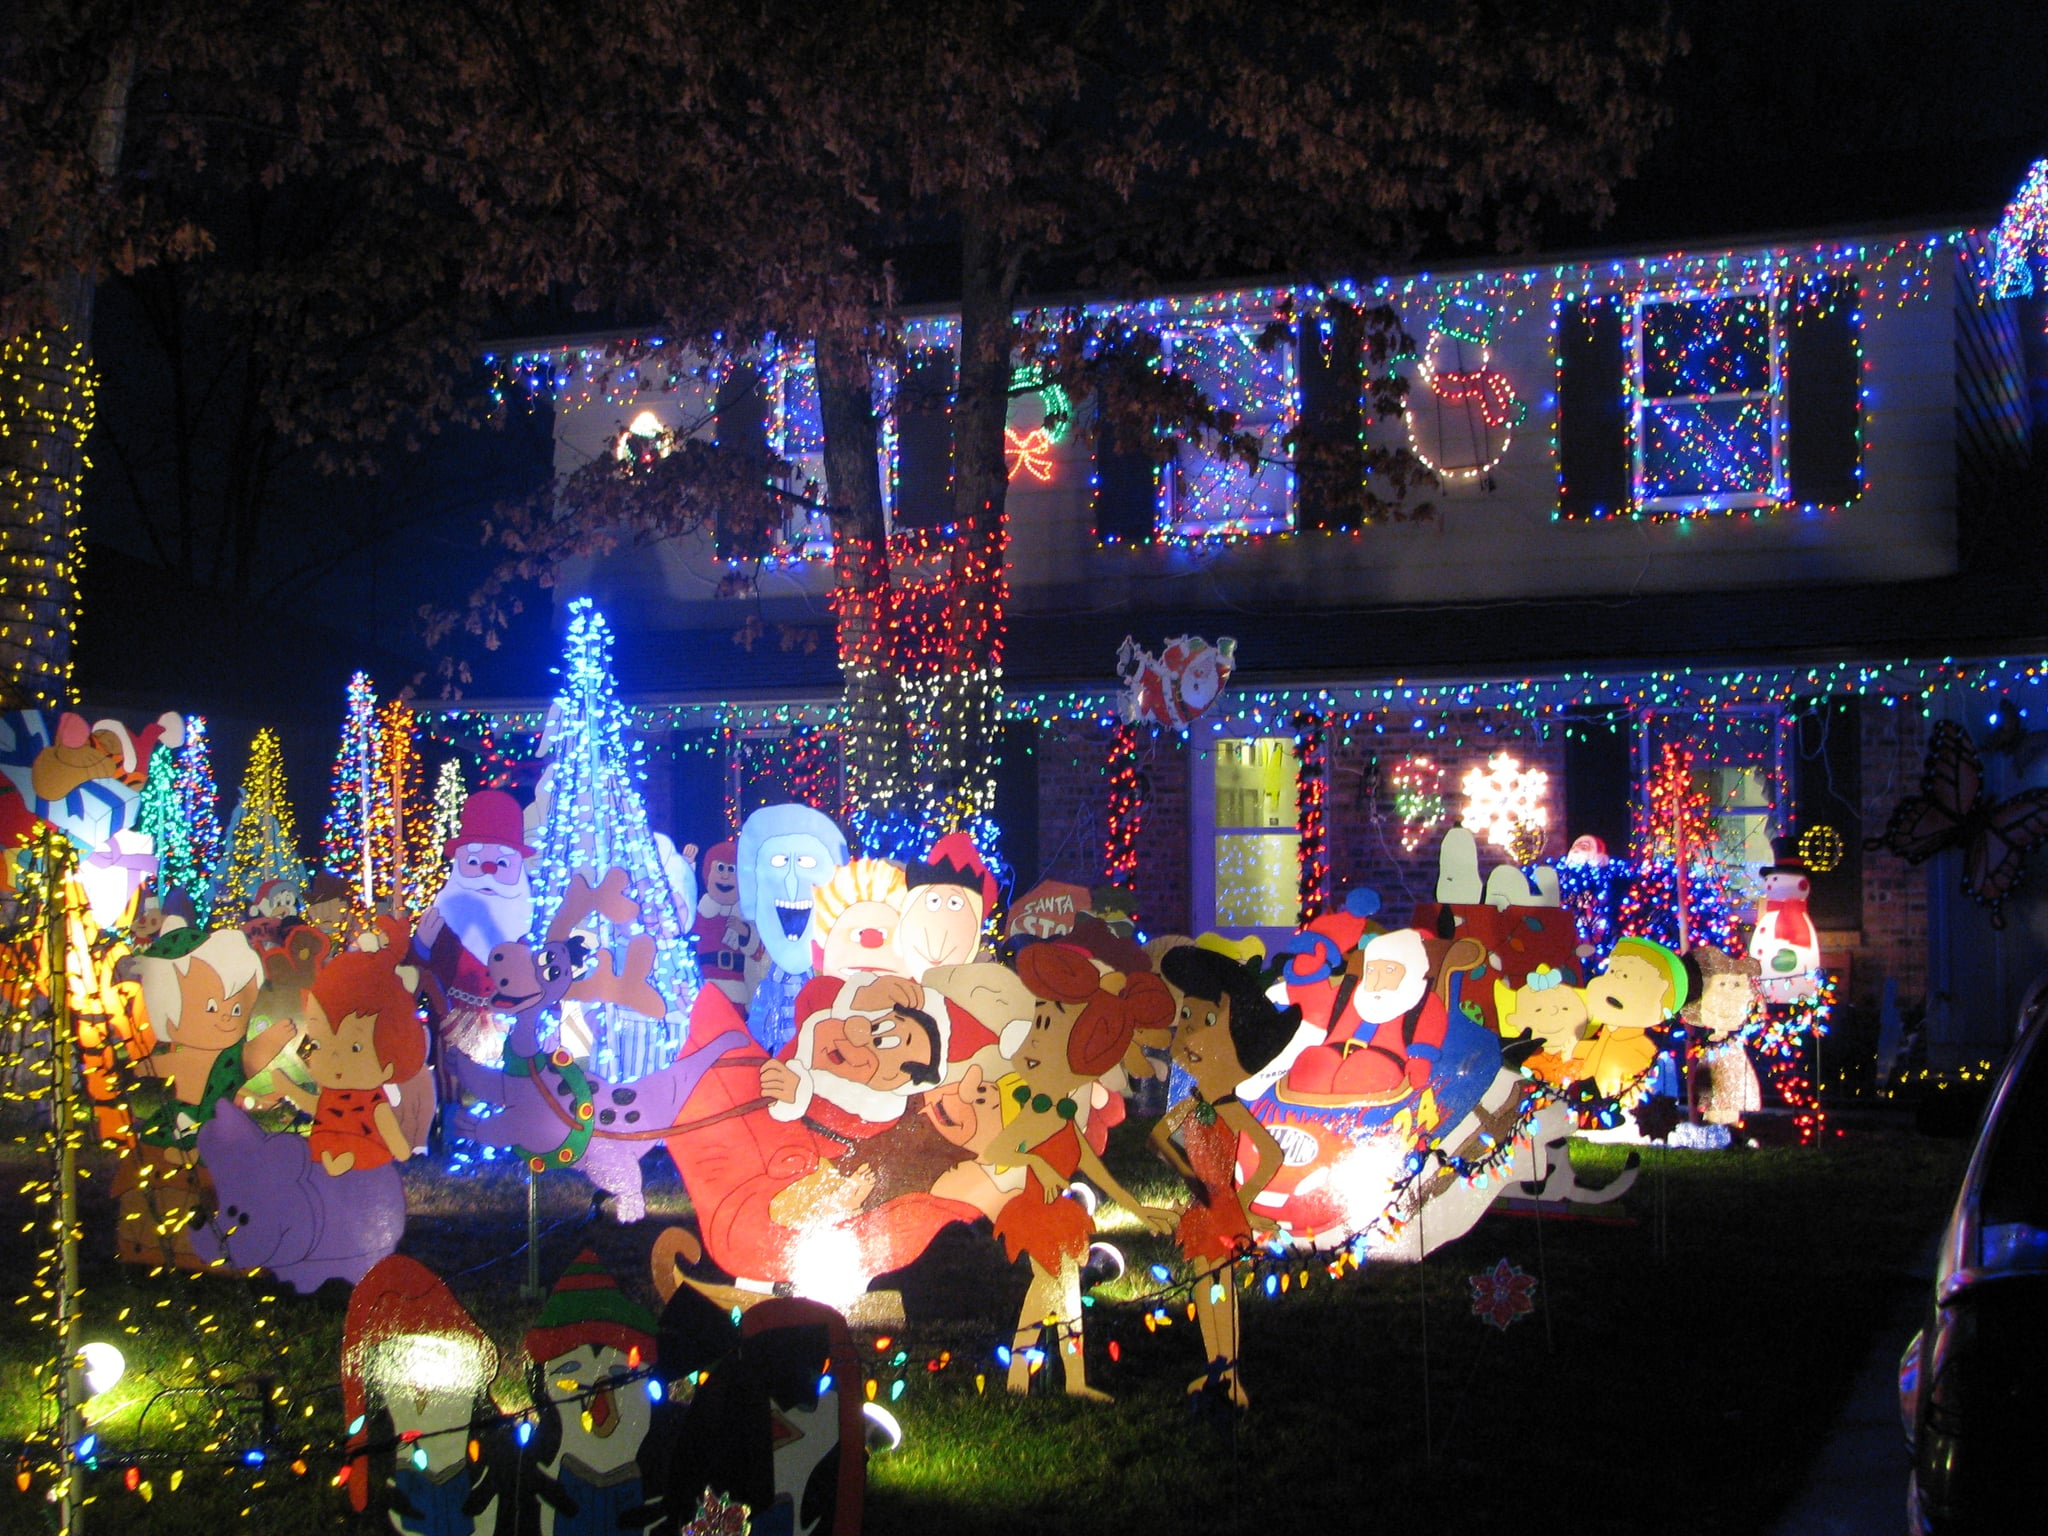 Defiance Ohio Christmas Gifts 2020 Defiance, OH | The Most Decorated Christmas Homes in America